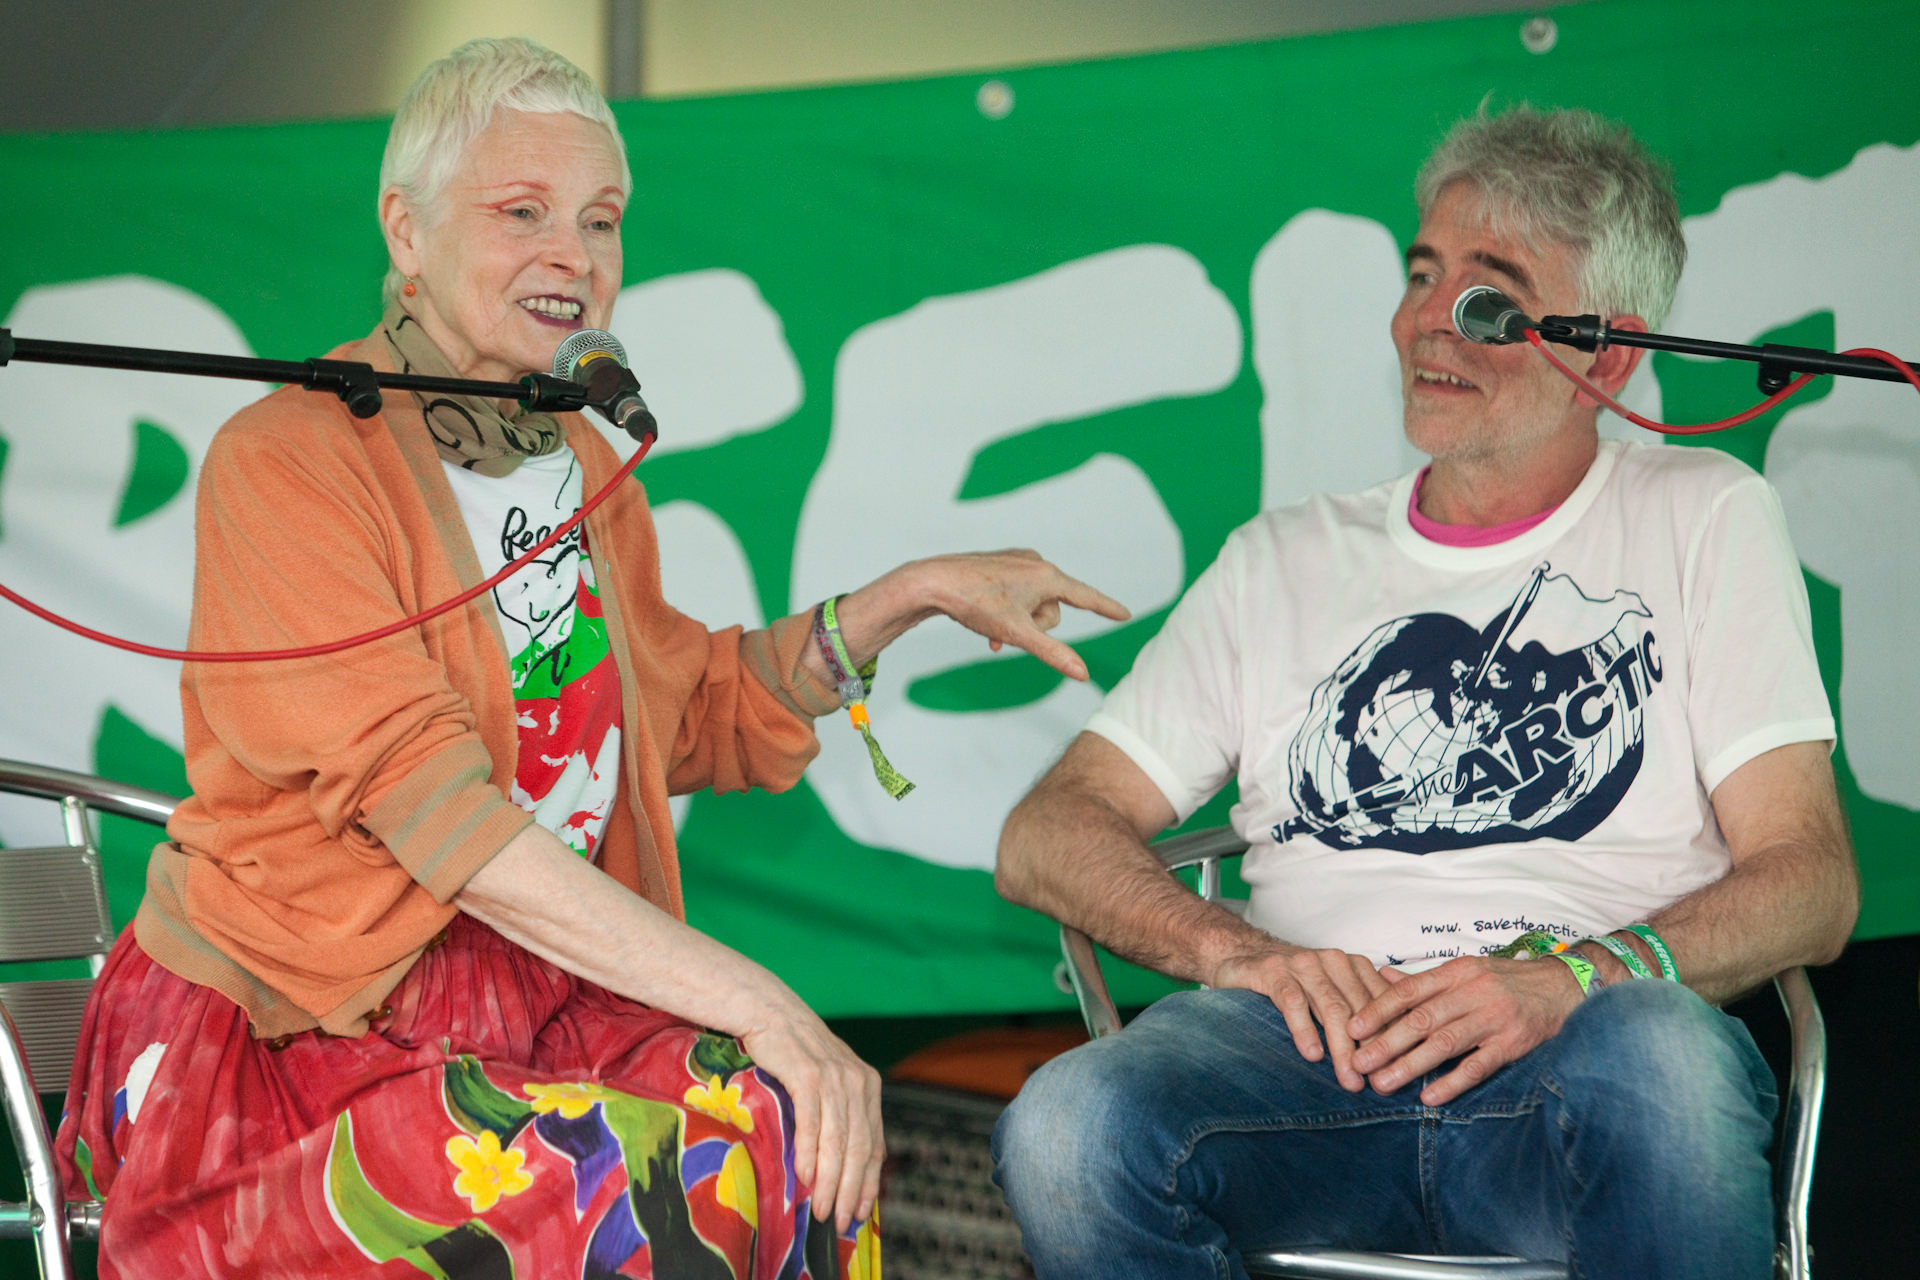 Vivienne Westwood at Glastonbury